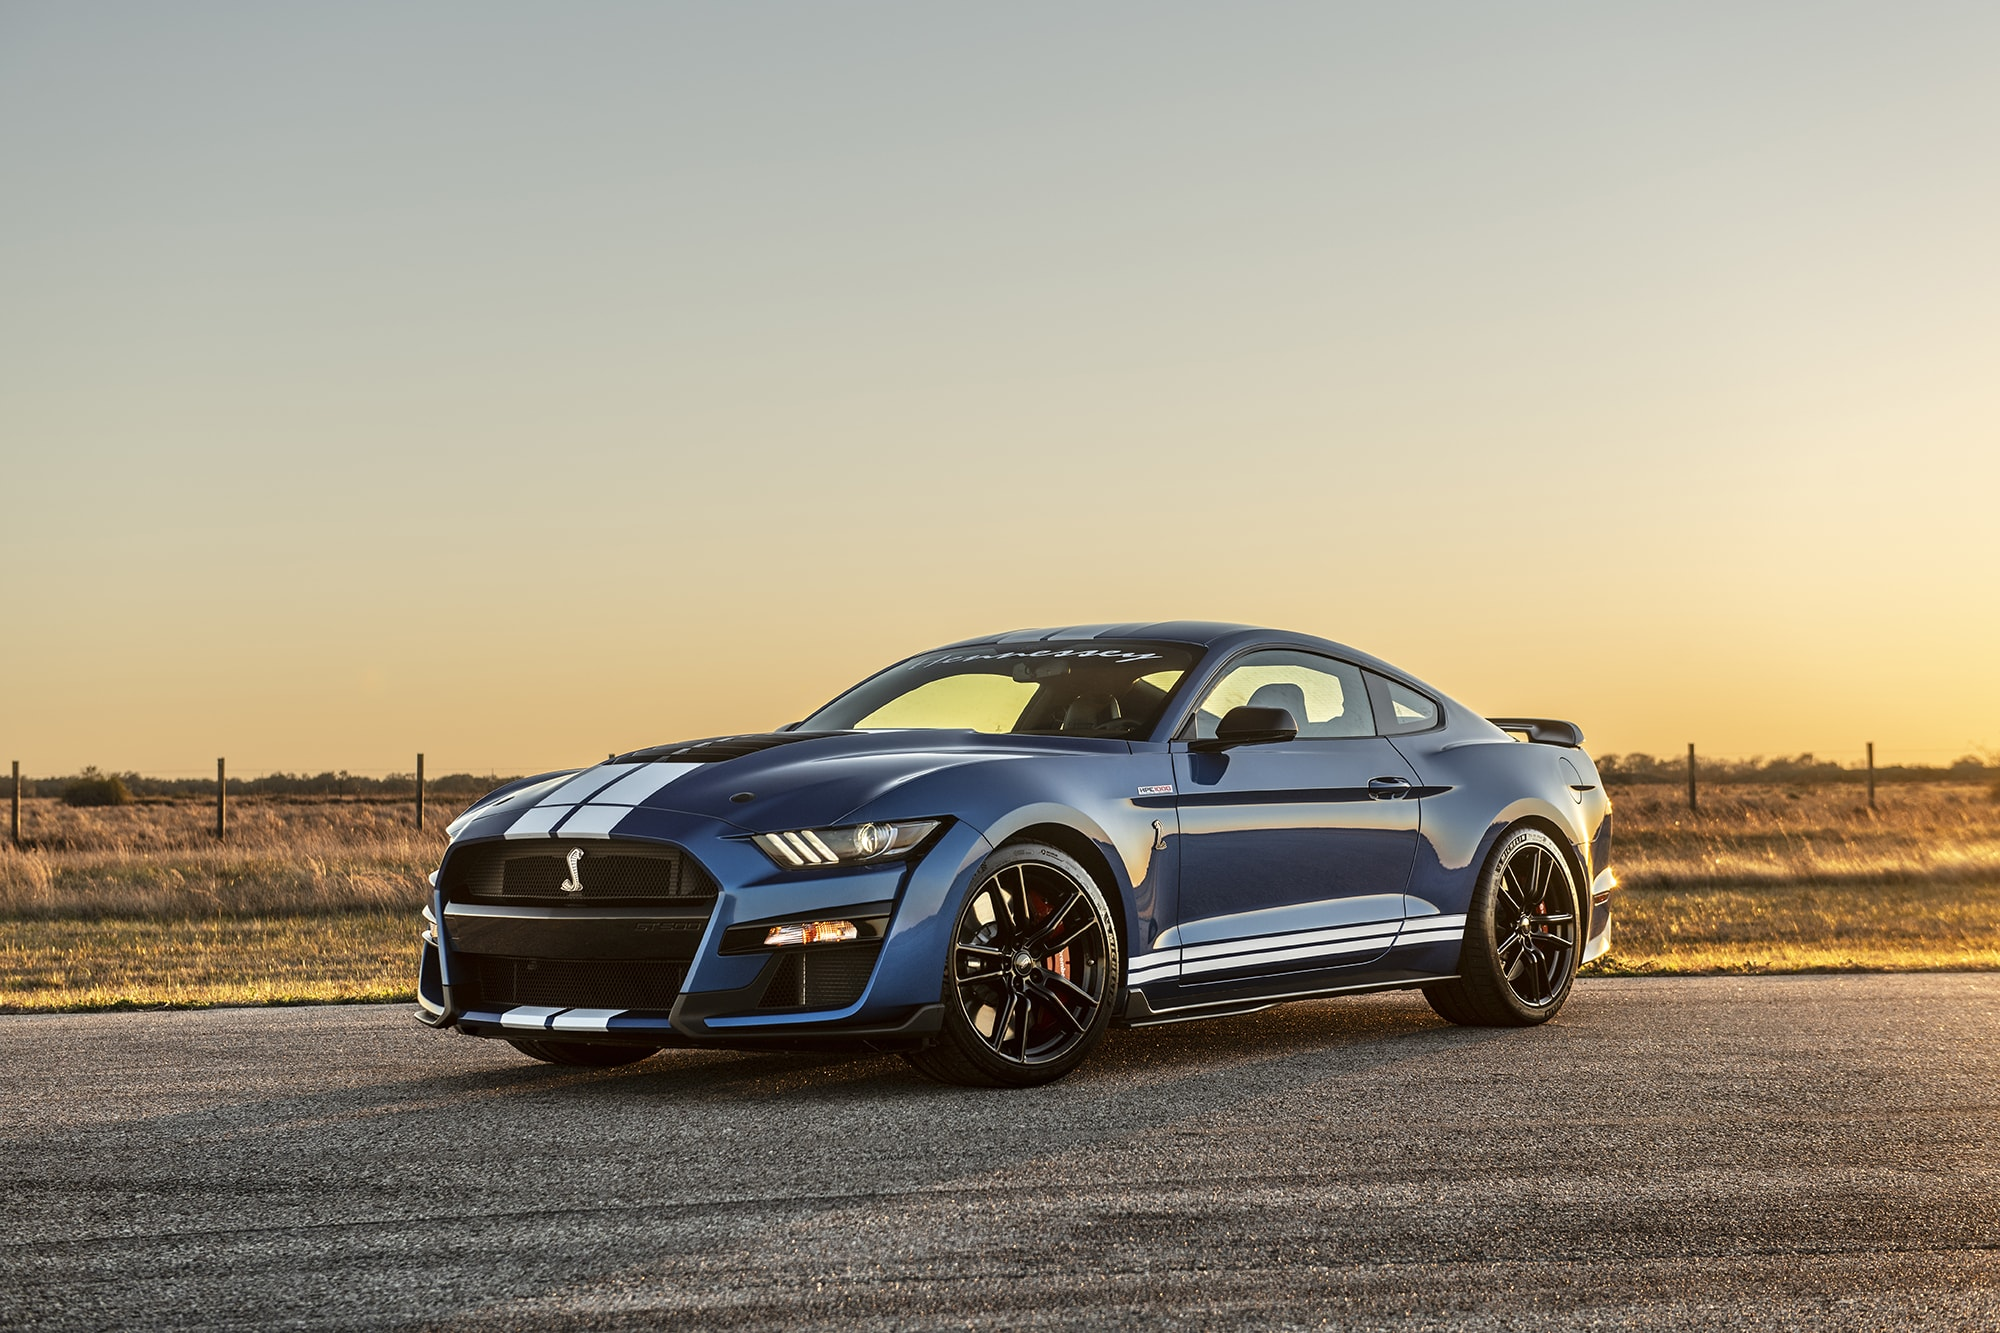 Ford Gt500 Shelby Mustang Upgrades Hennessey Performance